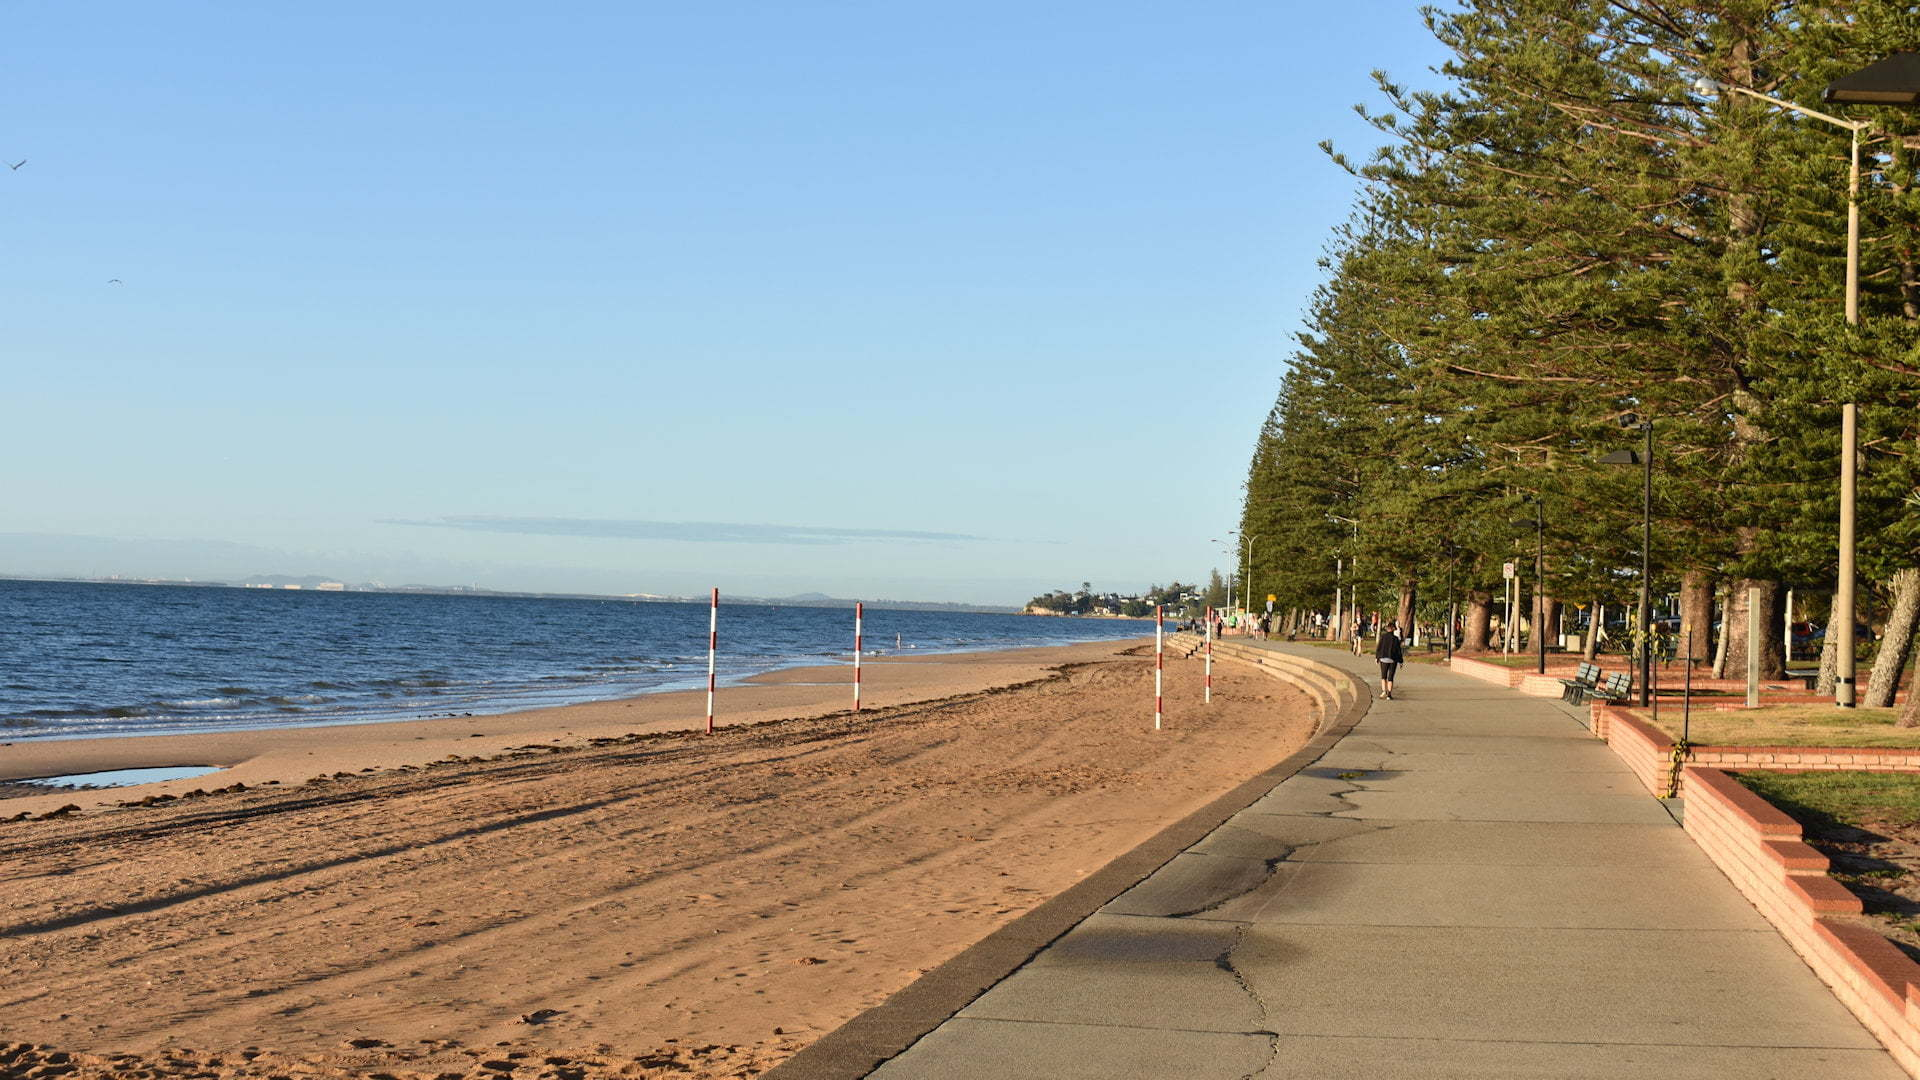 Beach with a pathway and a line of trees, taken at Suttons Beach in Redcliffe Peninsula